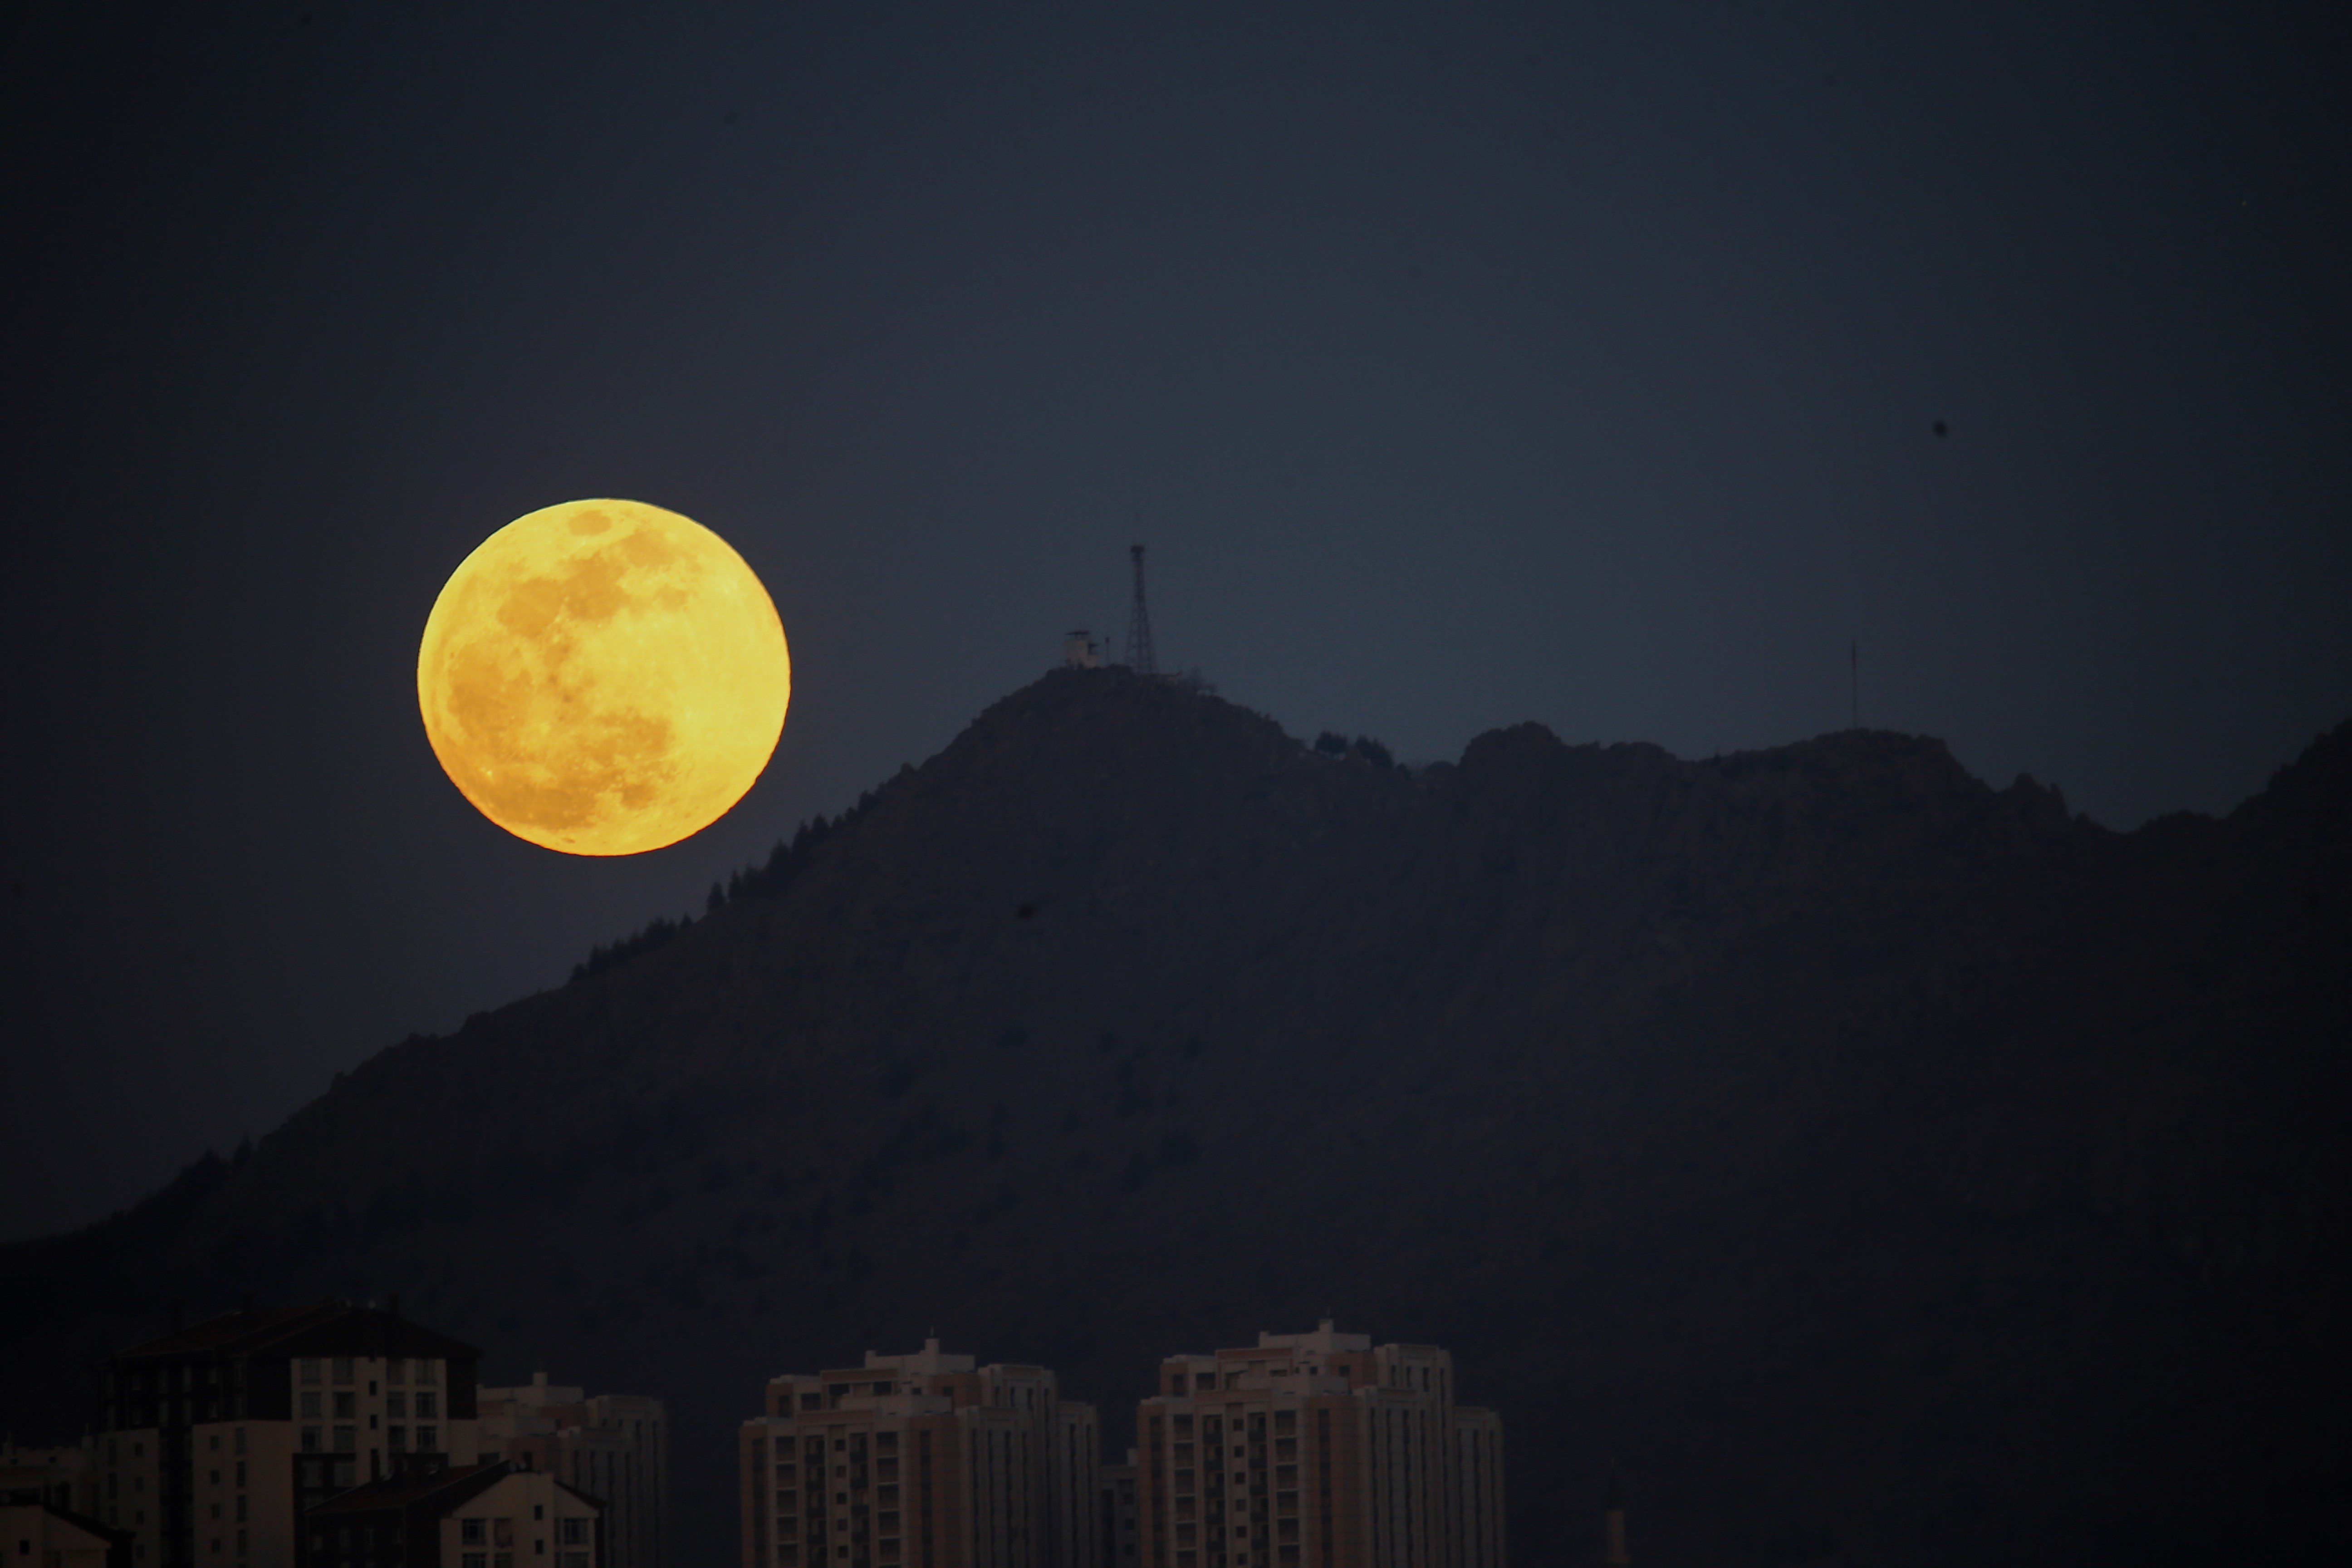 ANKARA, TURKEY - FEBRUARY 19: Supermoon is seen over Turkey's capital Ankara on February 19, 2019. A supermoon is a full moon that almost coincides with the closest distance that the Moon reaches to Earth in its elliptic orbit, resulting in a larger-than-usual visible size of the lunar disk as seen from Earth. (Photo by Dogukan Keskinkilic/Anadolu Agency/Getty Images)